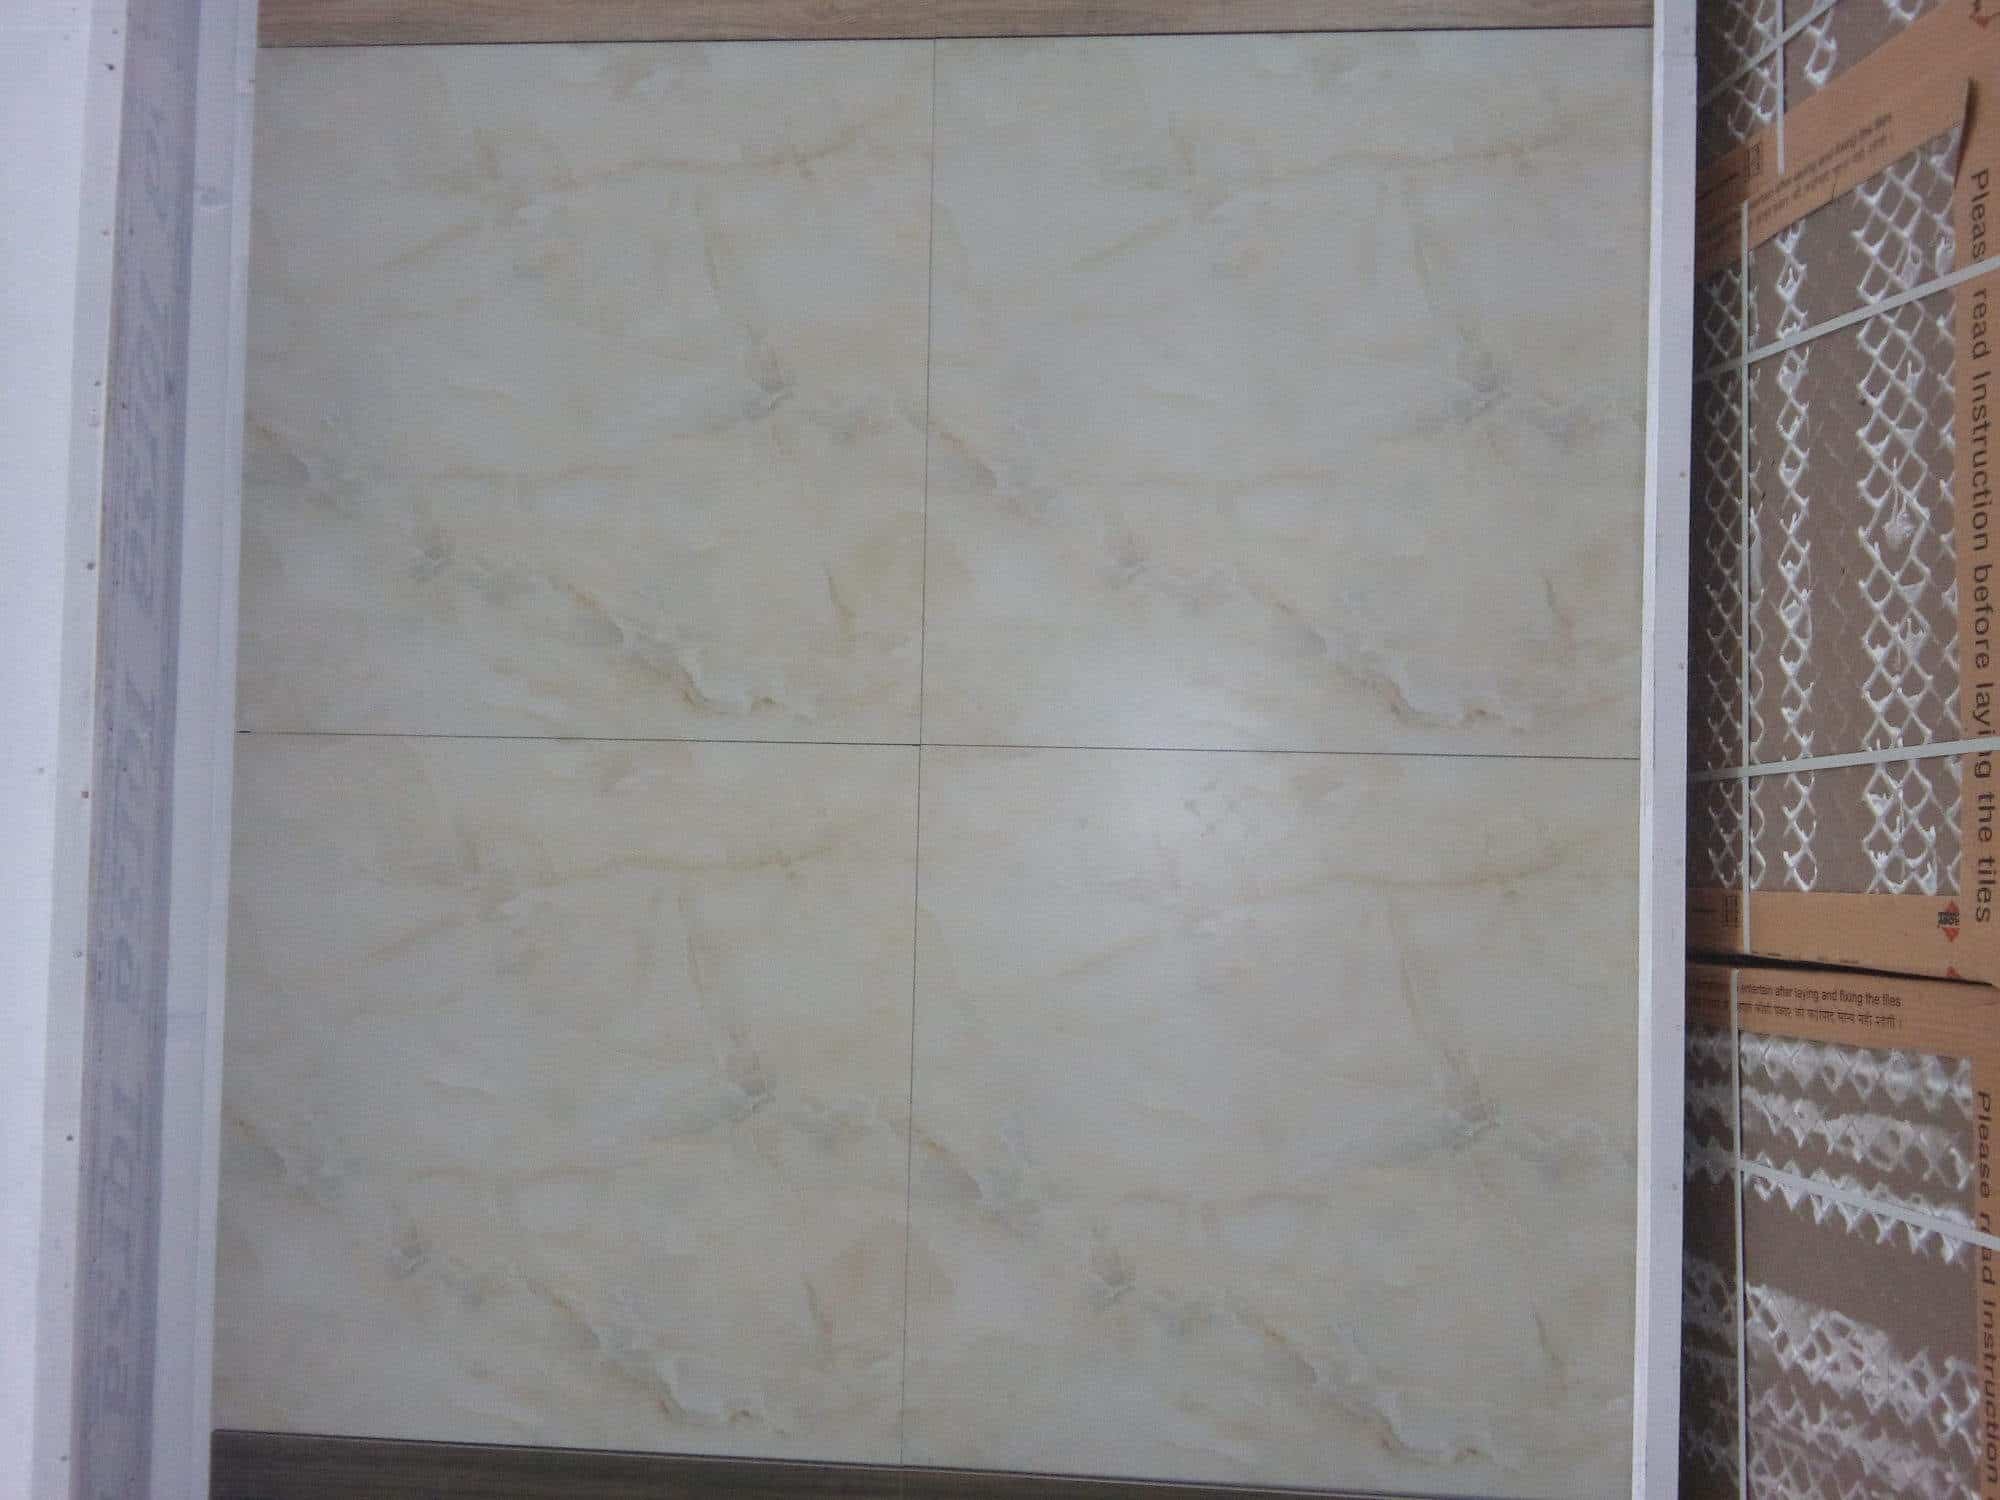 Shiv Shakti Ceramics Rd Mile Tile Dealers In Siliguri Justdial - Dah tile